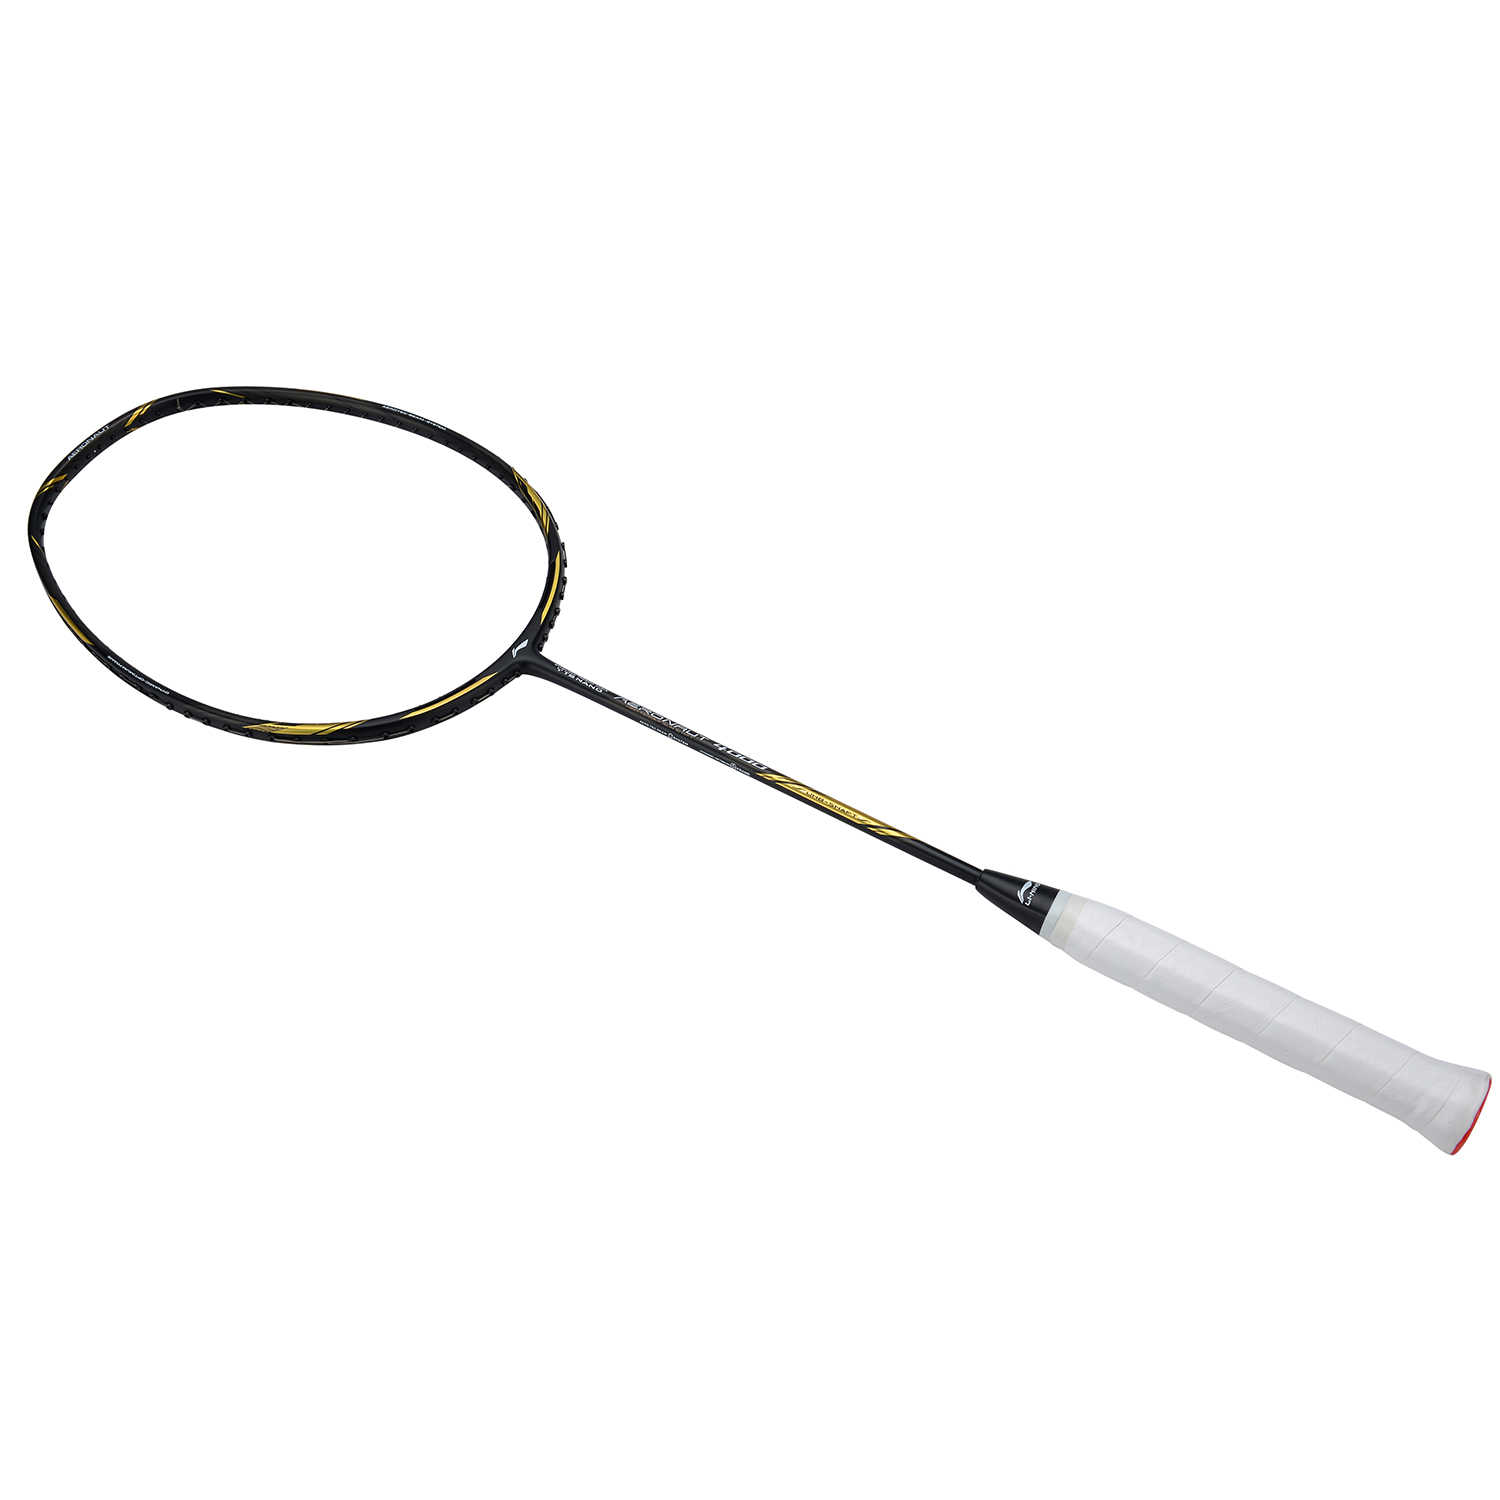 2019 100% Genuine Li Ning Carbon Fiber Badminton Racket 3d Calibar 600 Offensive And Defensive Raquette De Badminton